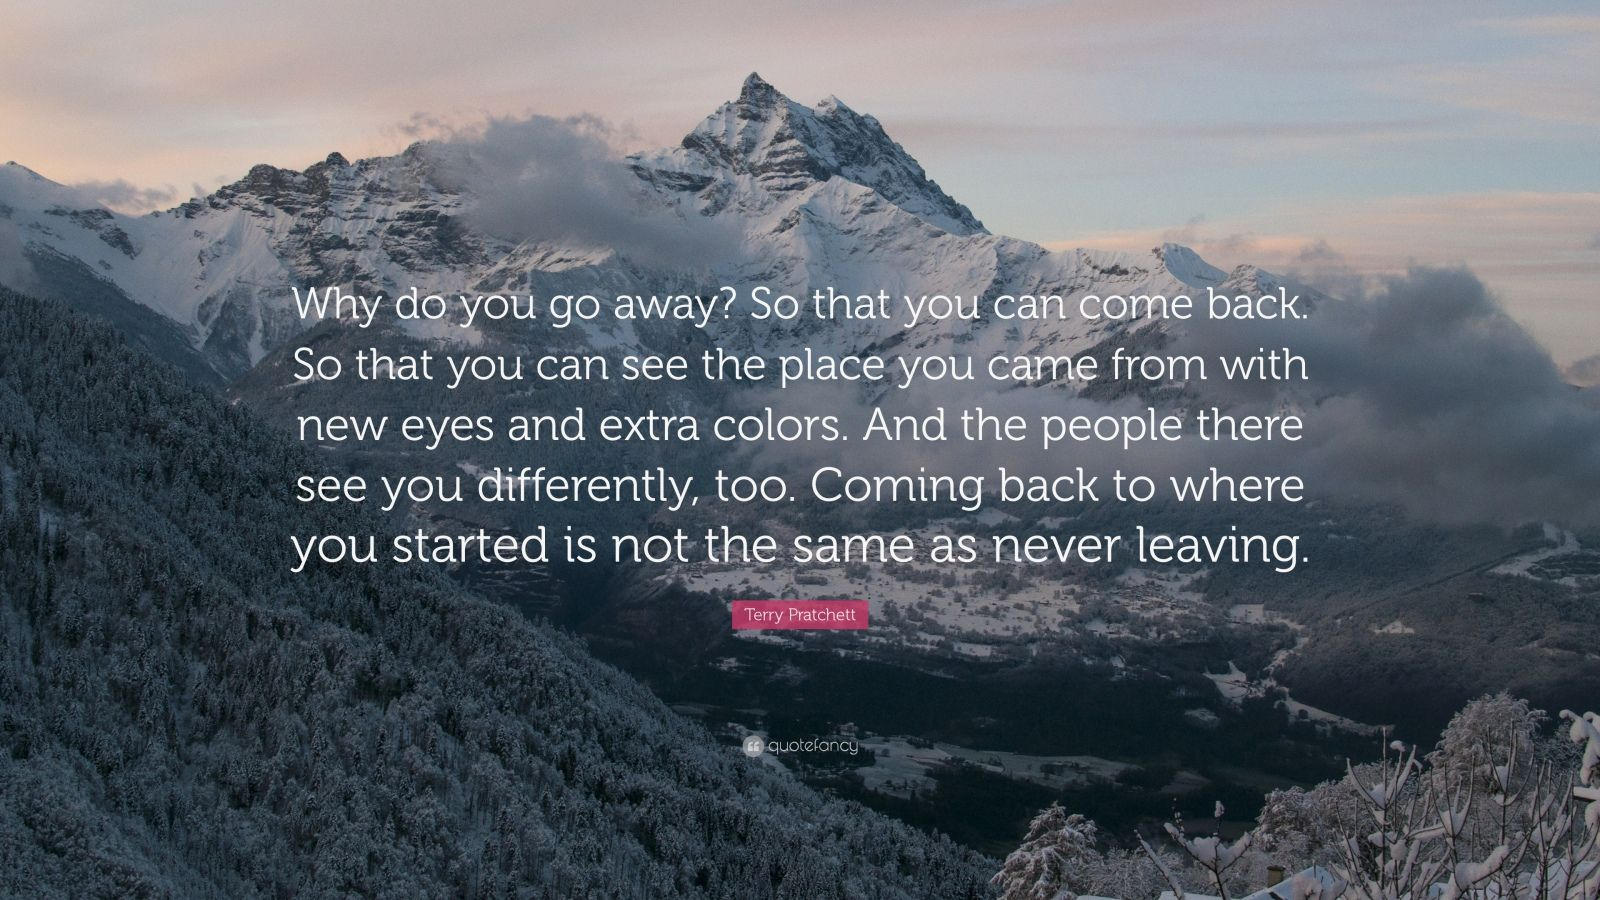 "Terry Pratchett Quote: ""Why do you go away? So that you can come back. So that you can see the place you came from with new eyes and extra colors. And the people there see you differently, too. Coming back to where you started is not the same as never leaving."""